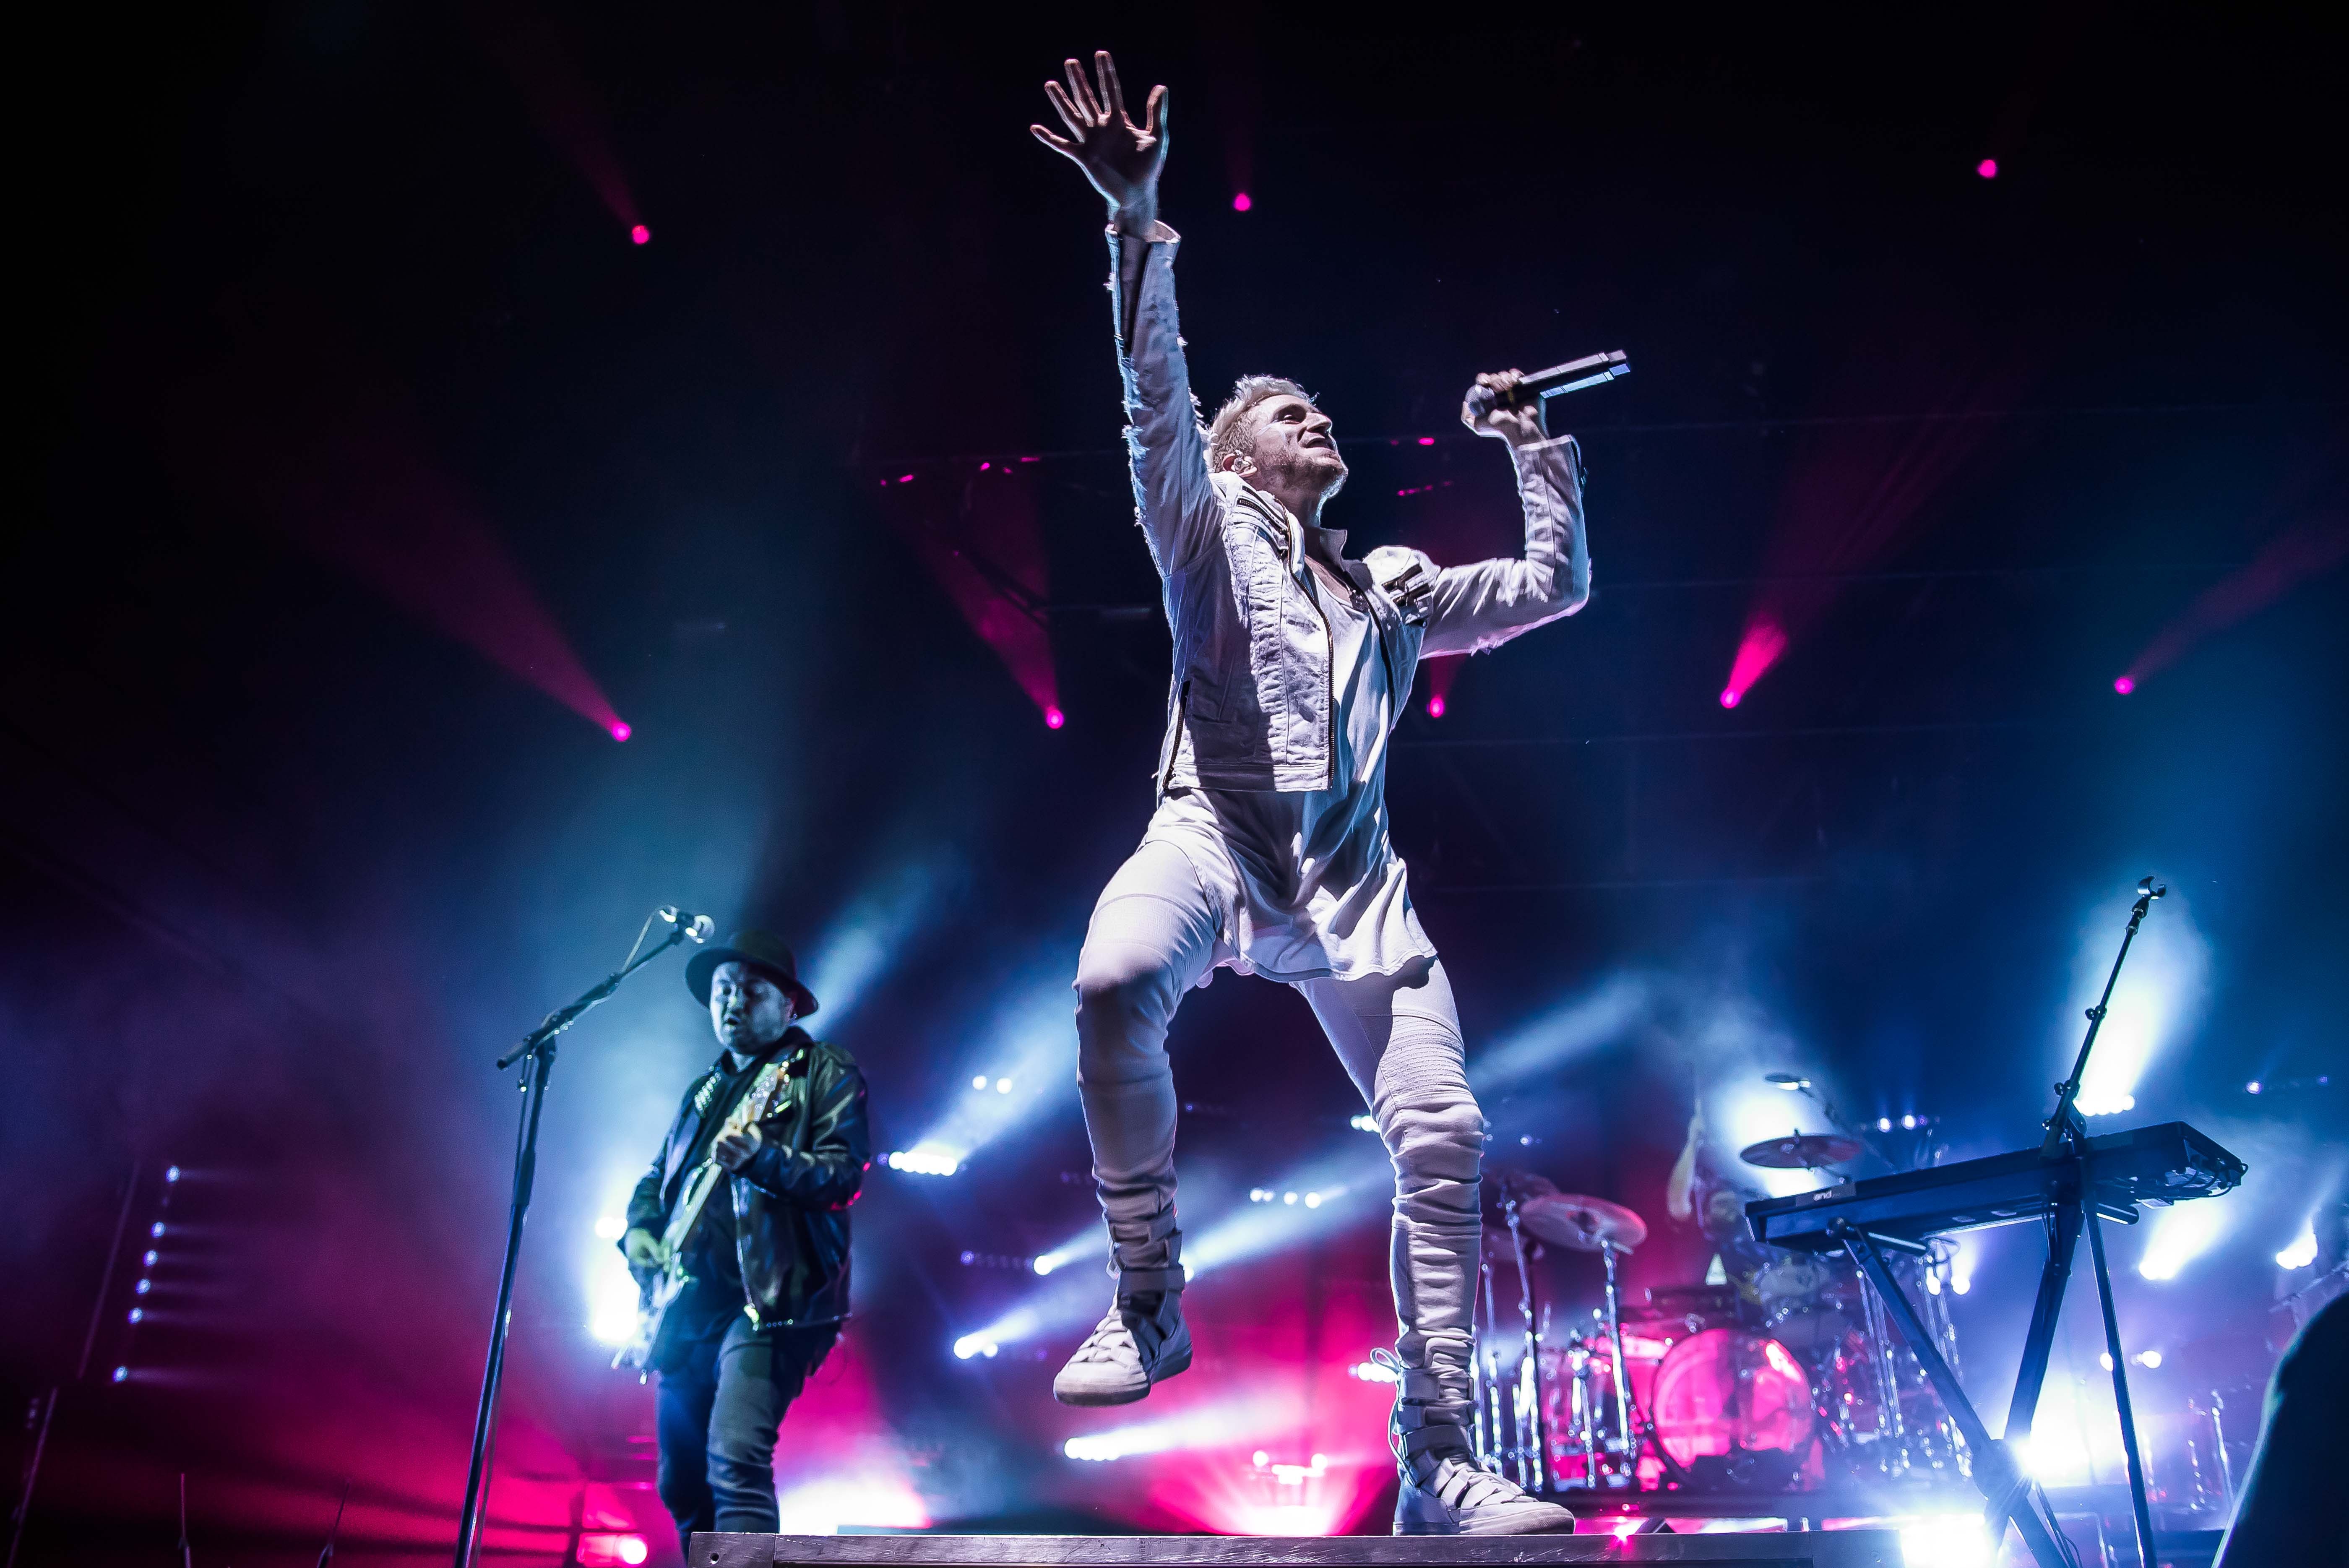 After a year and a half off the road, Cincinnati-based rock band WALK THE MOON kicked off their Press Restart Tour on Friday,{ } January 12 at The Anthem. The tour will hit 27 cities, and celebrates their third major label release, 2017's What If Nothing. Company of Thieves opened the show. (Image: Joy Asico)